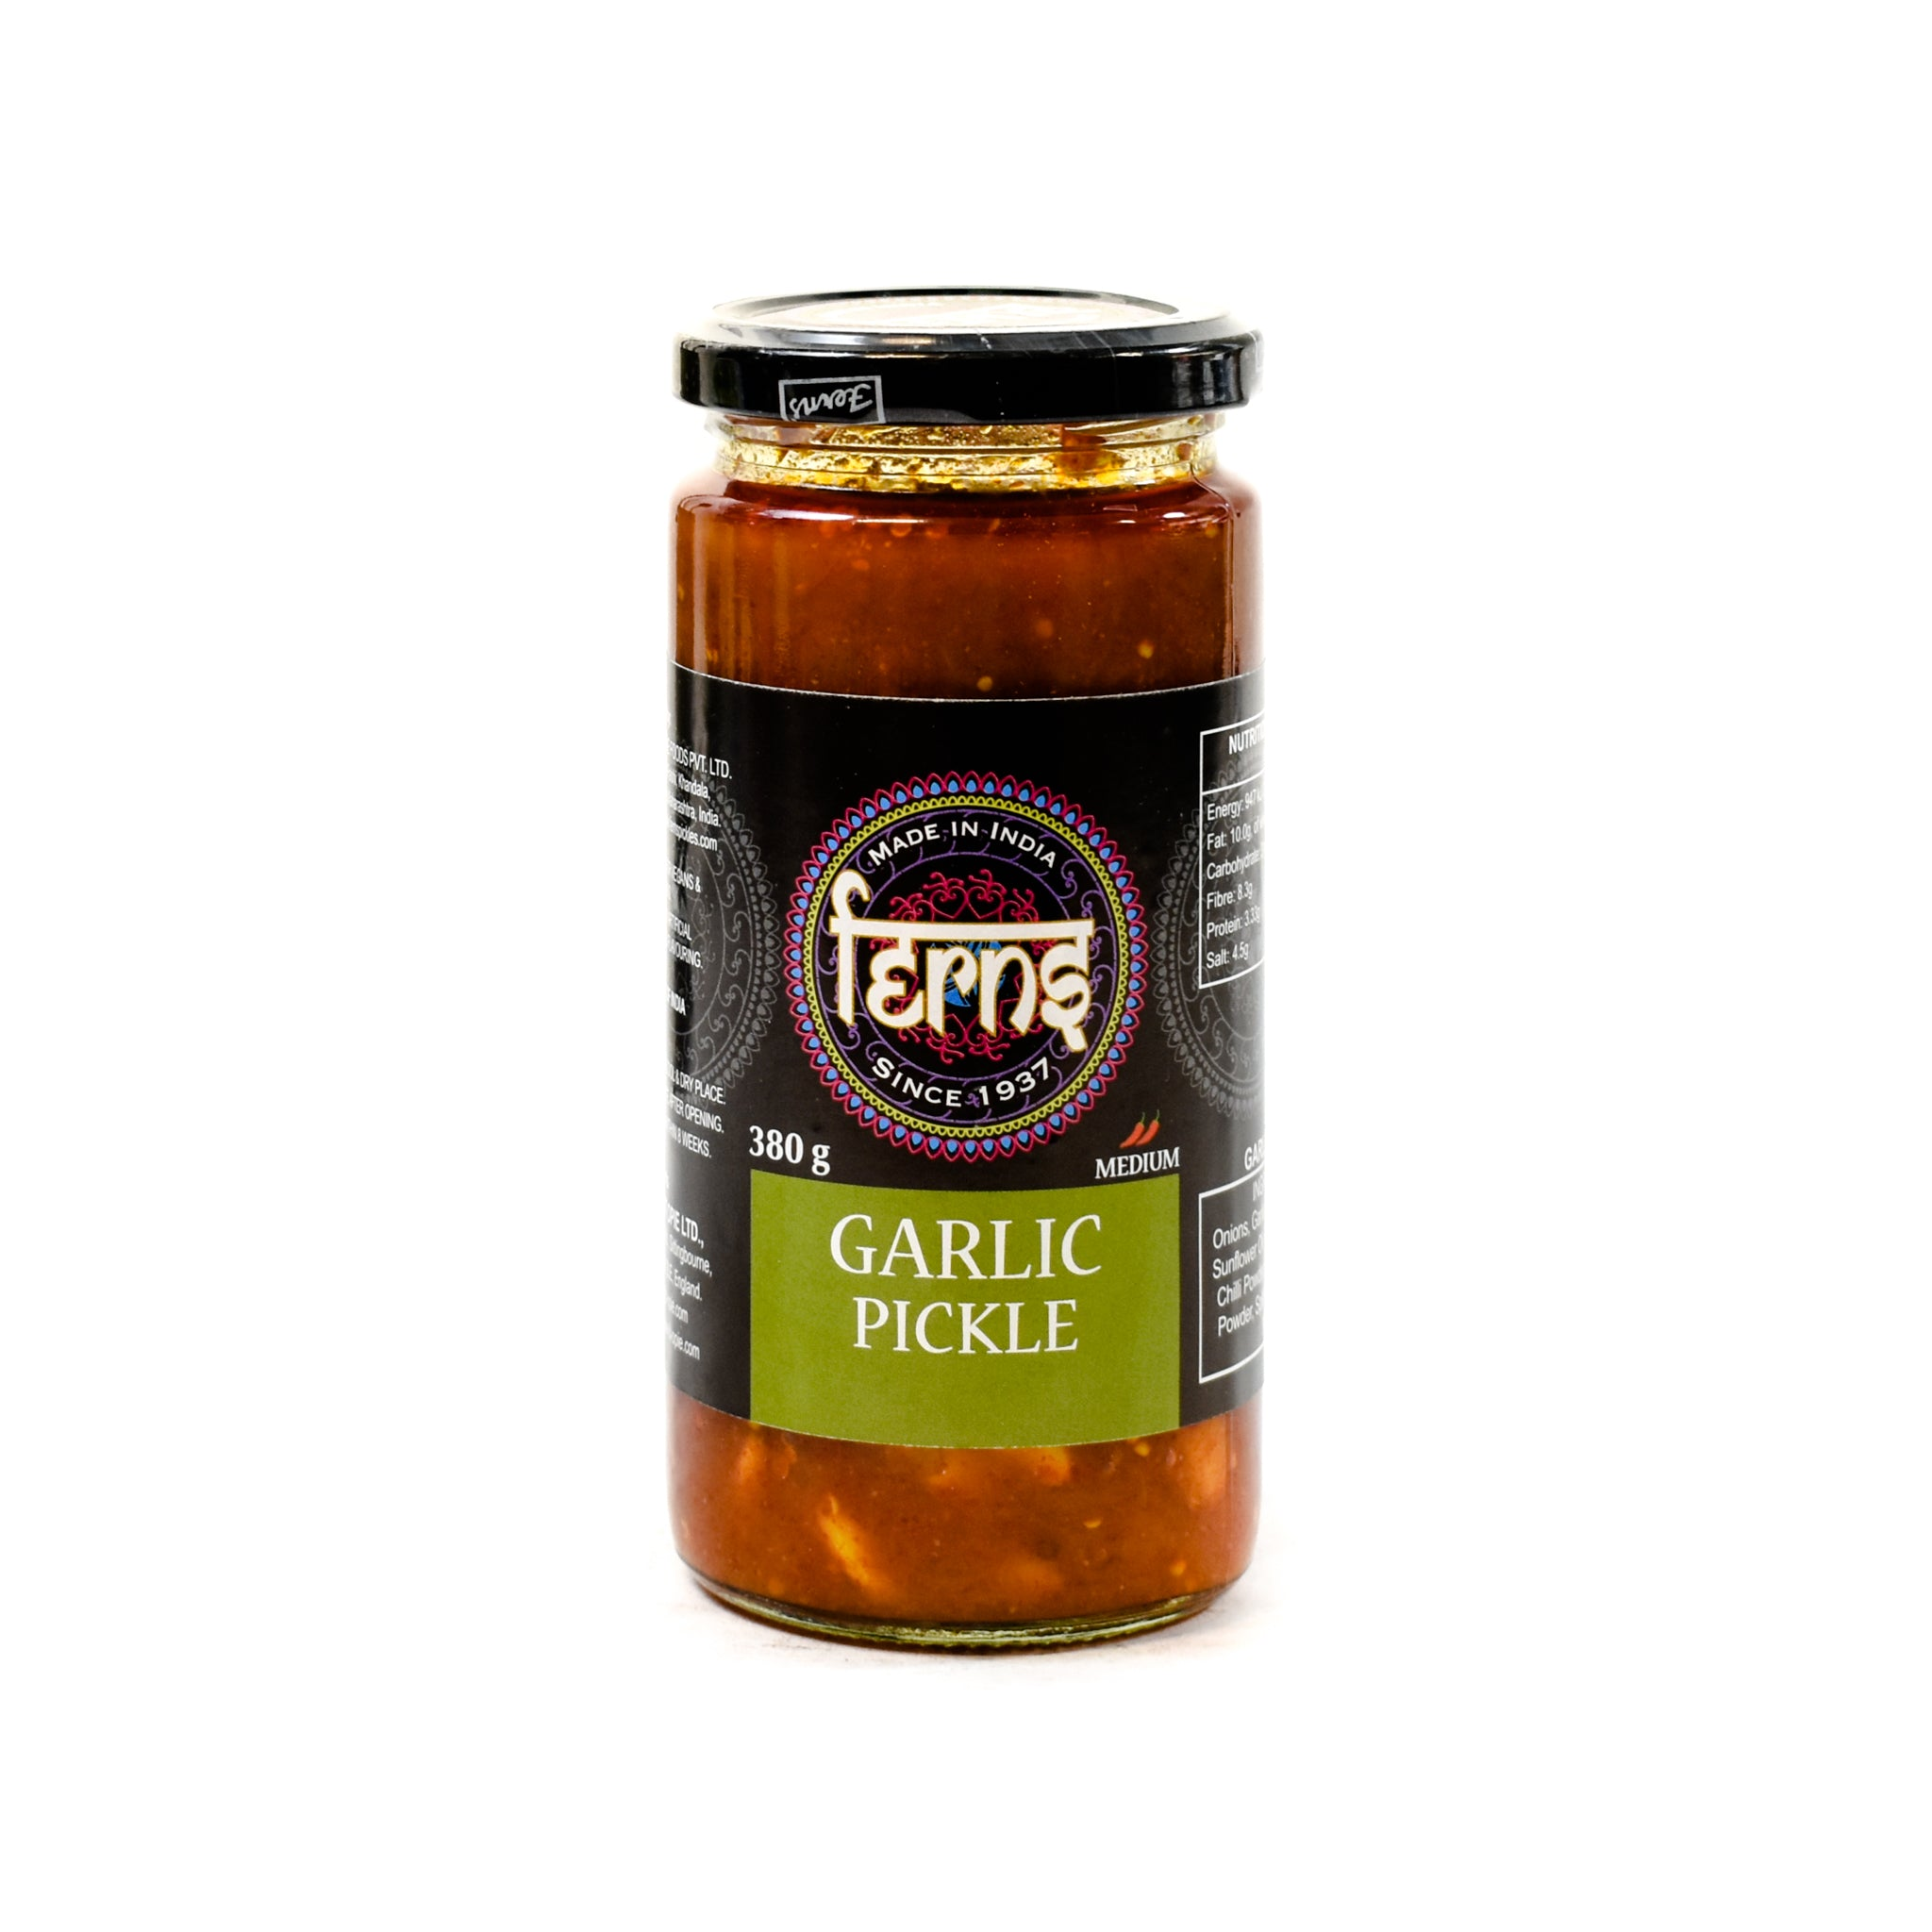 Ferns' Garlic Pickle 380g Ingredients Sauces & Condiments Asian Sauces & Condiments Indian Food